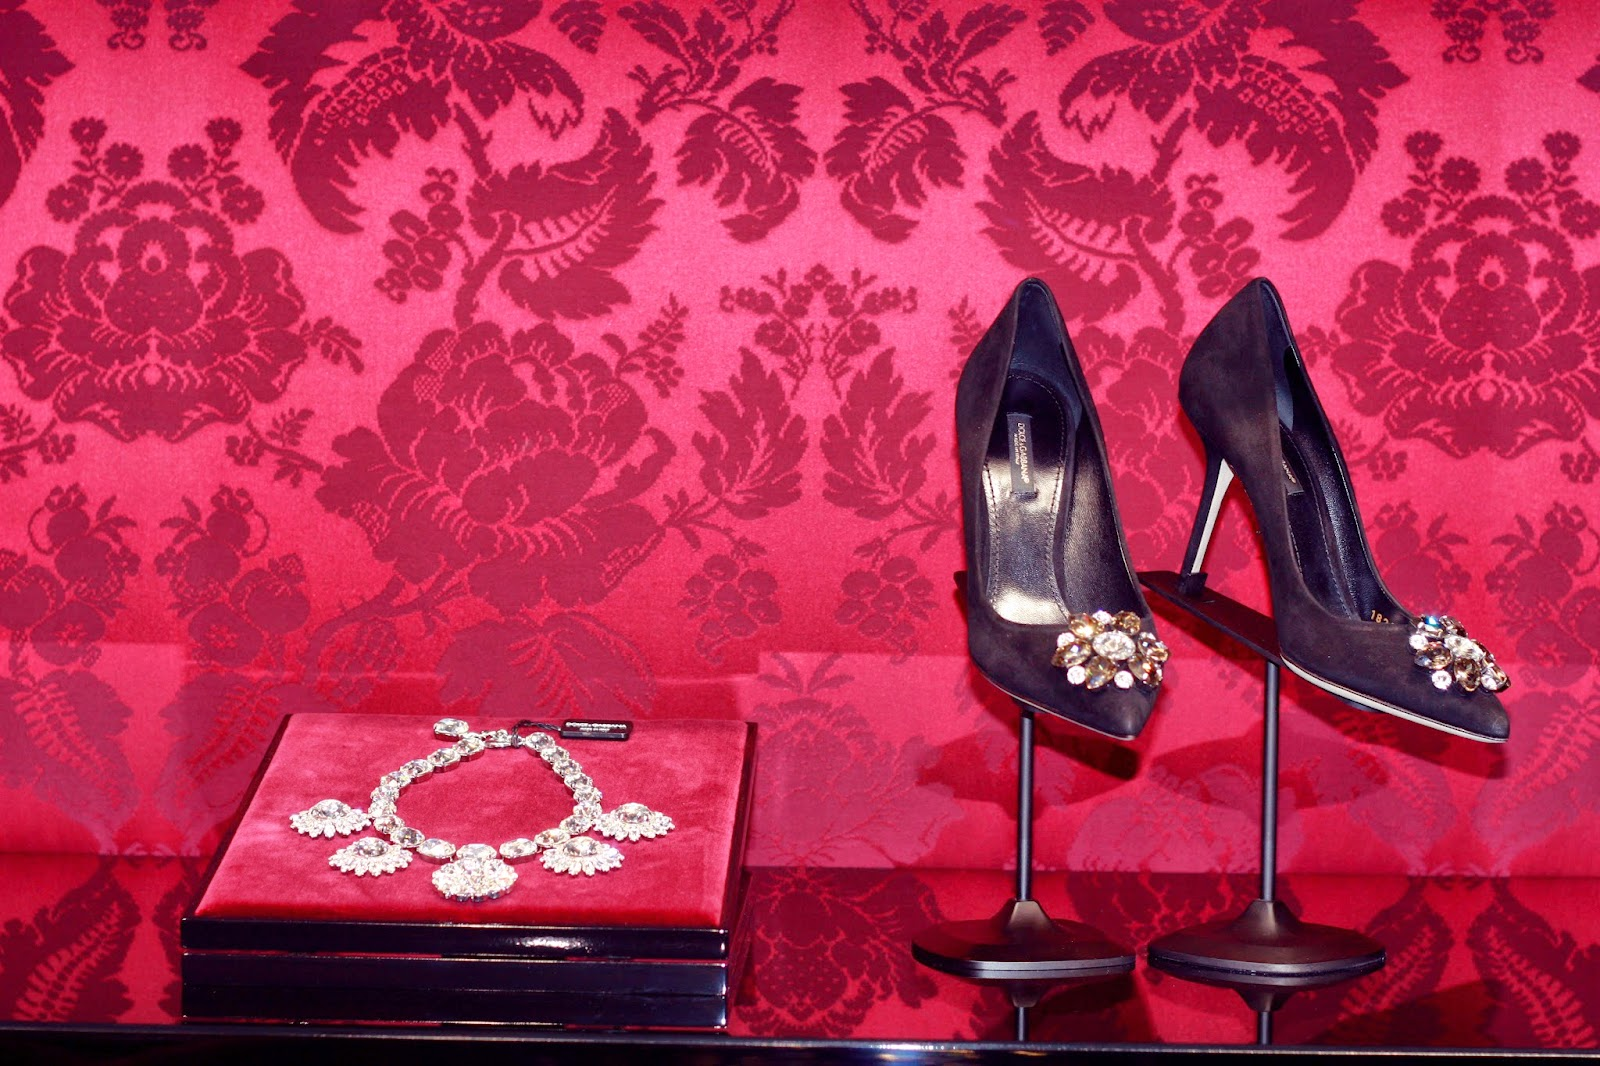 Dolce&Gabbana shoes